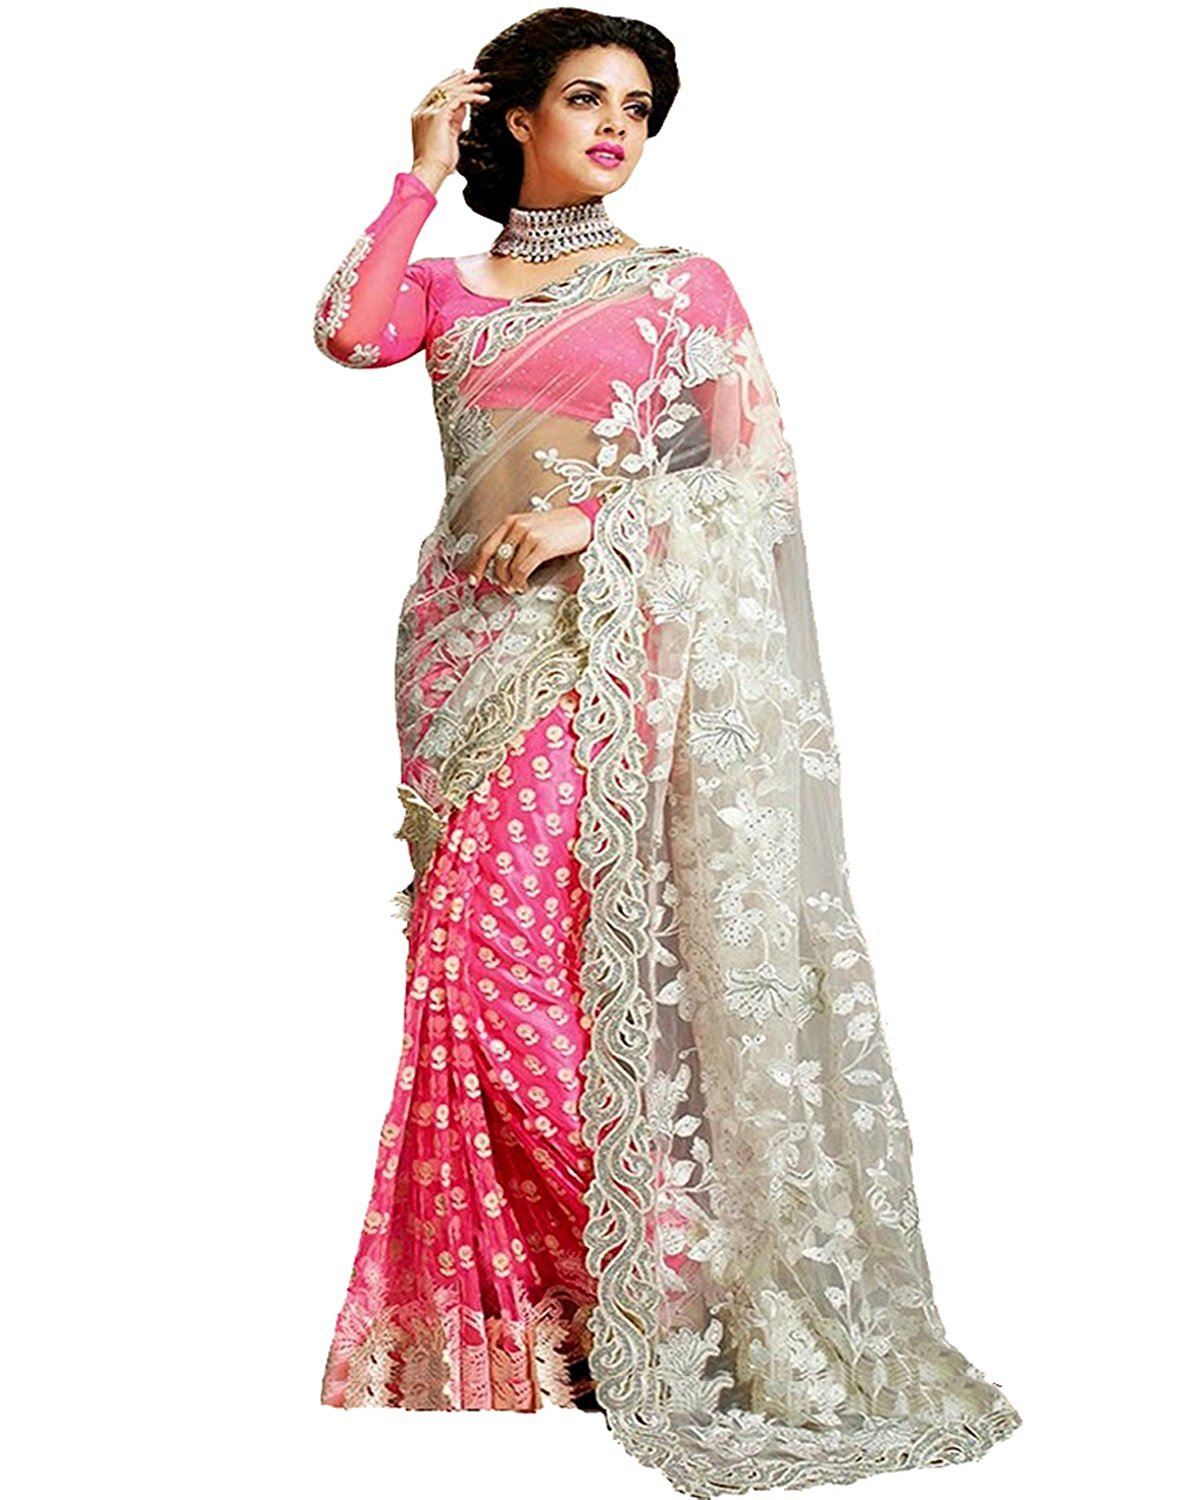 Femiss Net & Georgette Pink Saree With Blouse,Pink,Free size